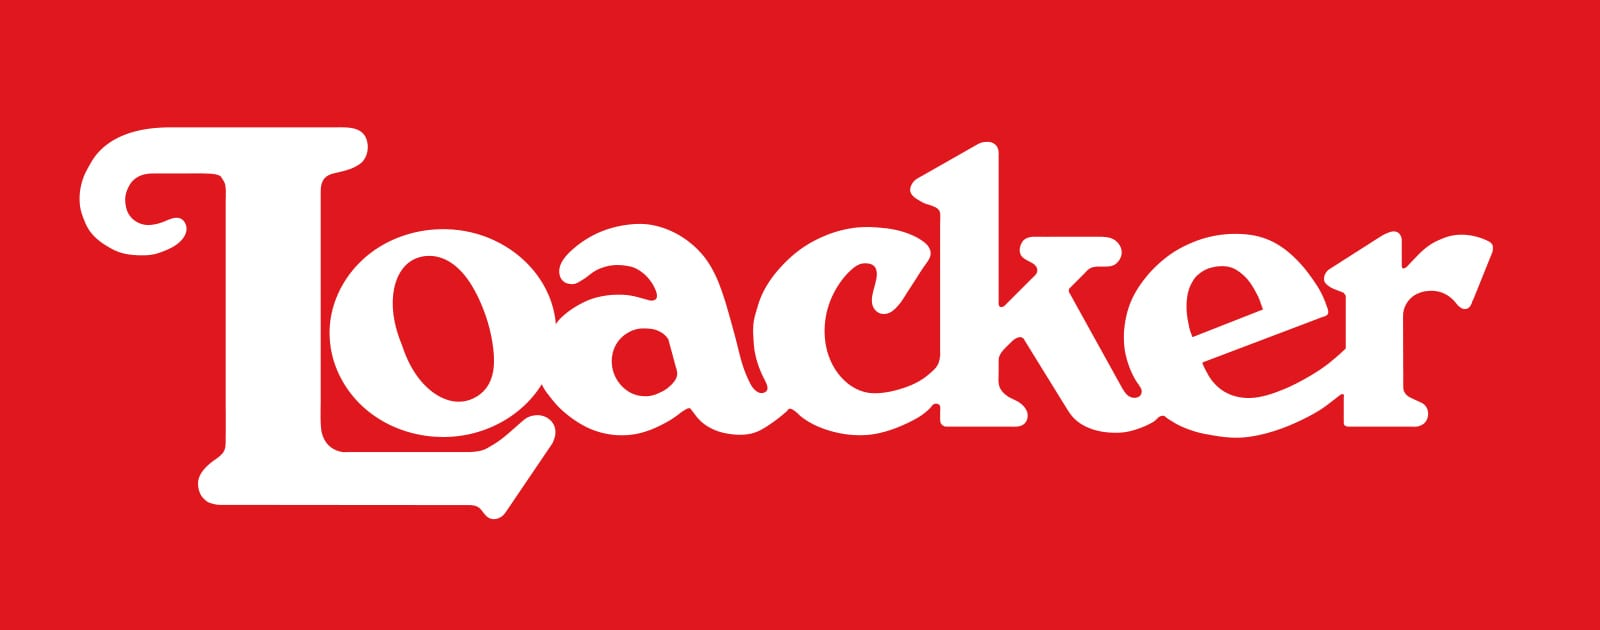 Loacker Spa logo